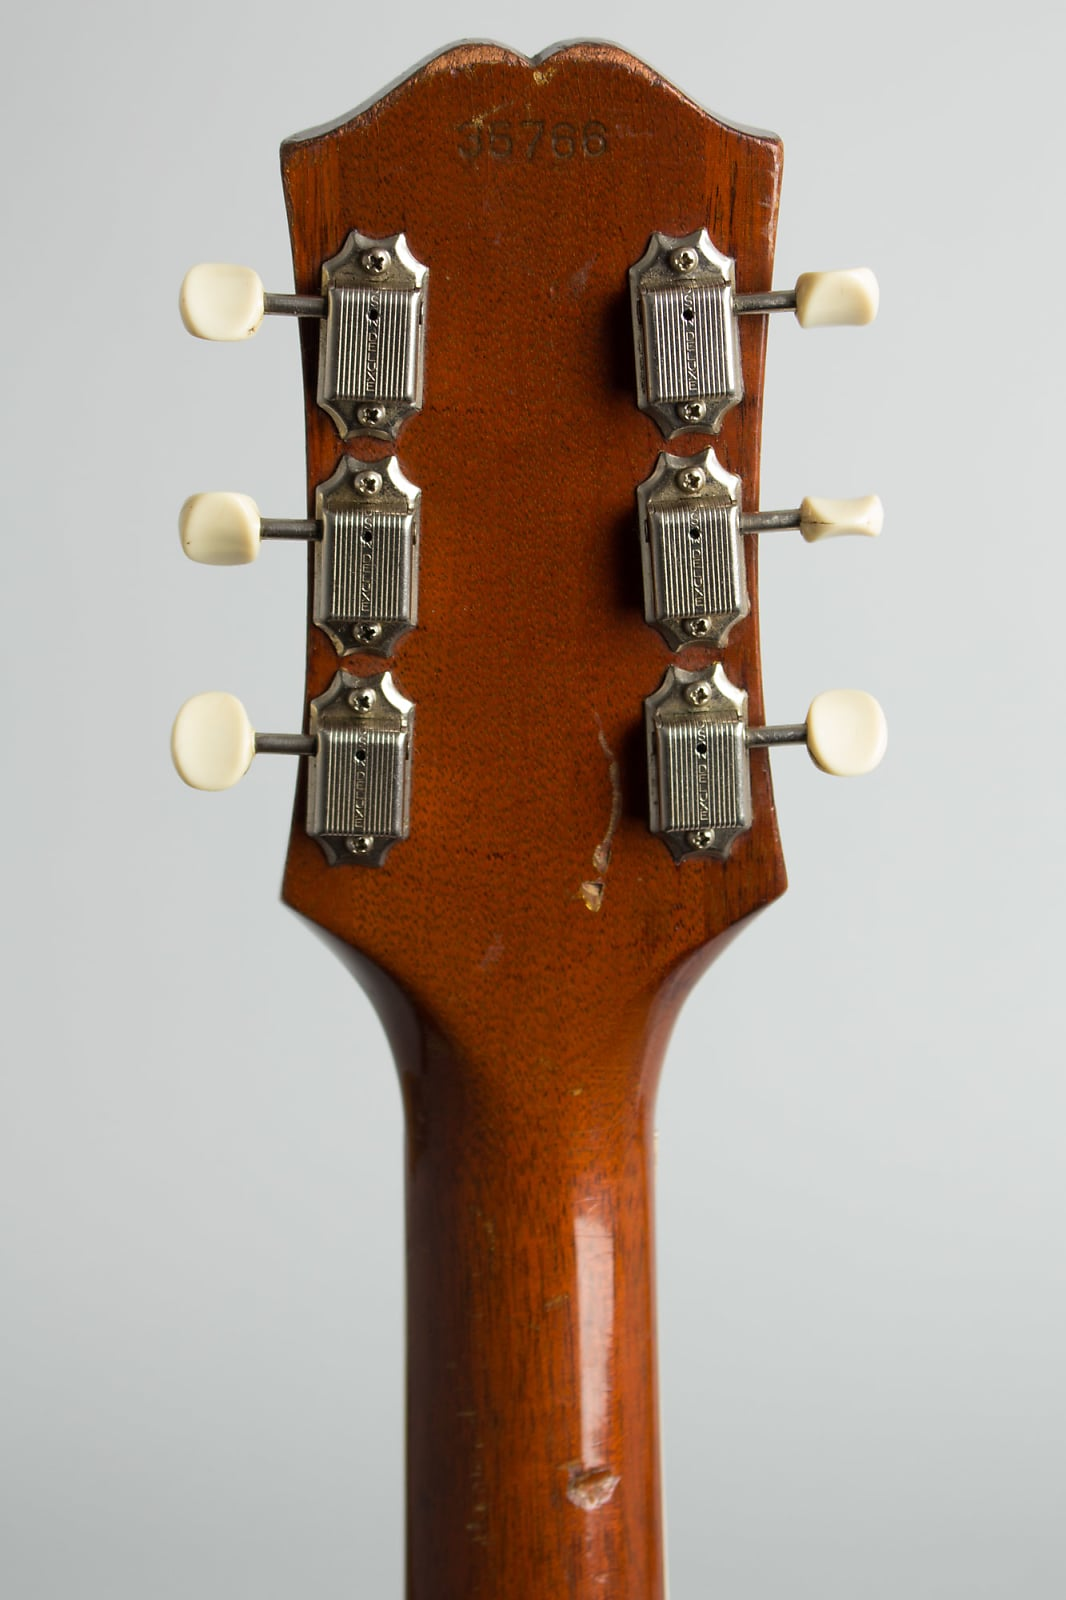 Epiphone  Casino Thinline Hollow Body Electric Guitar (1961), ser. #35766, original tan hard shell case.